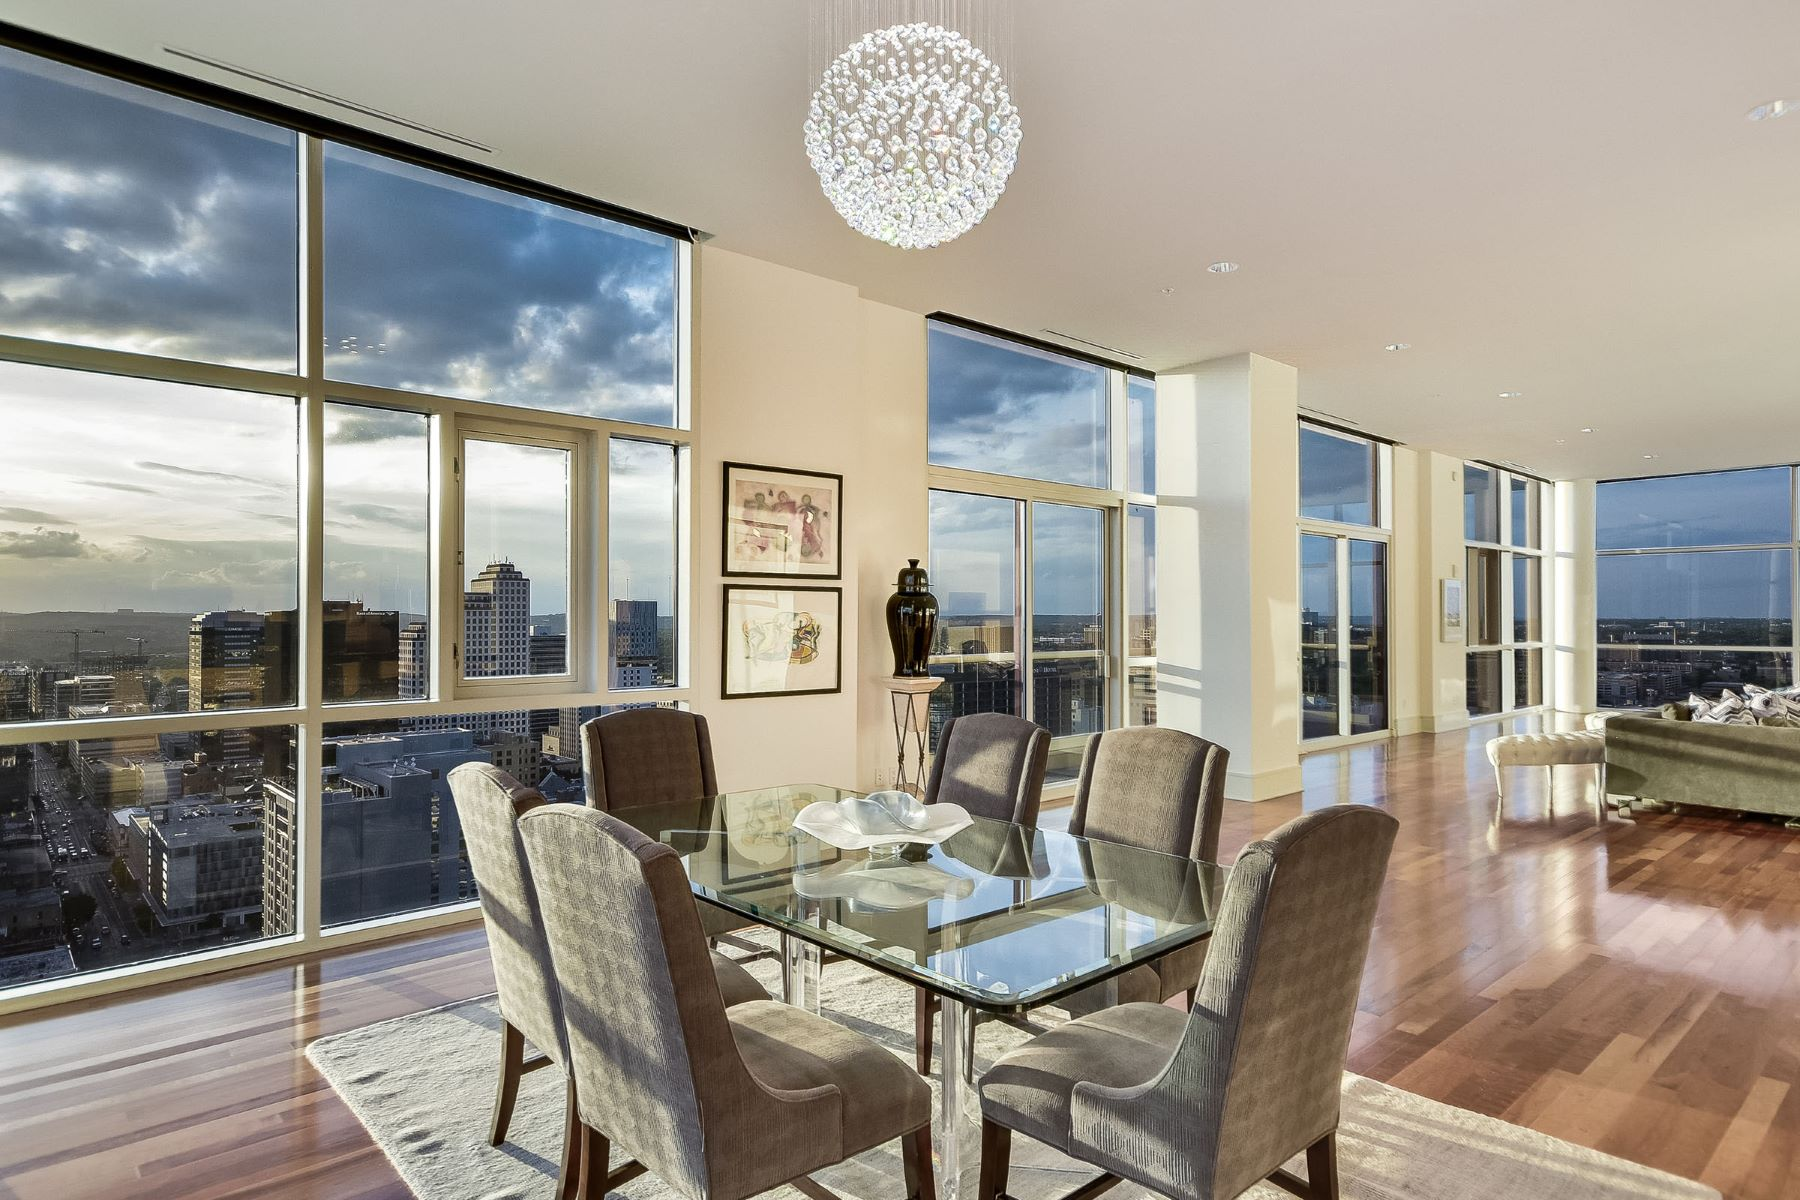 Condominium for Sale at Penthouse Style Condo with World Class Views 555 E 5th St 3006 Austin, Texas 78701 United States